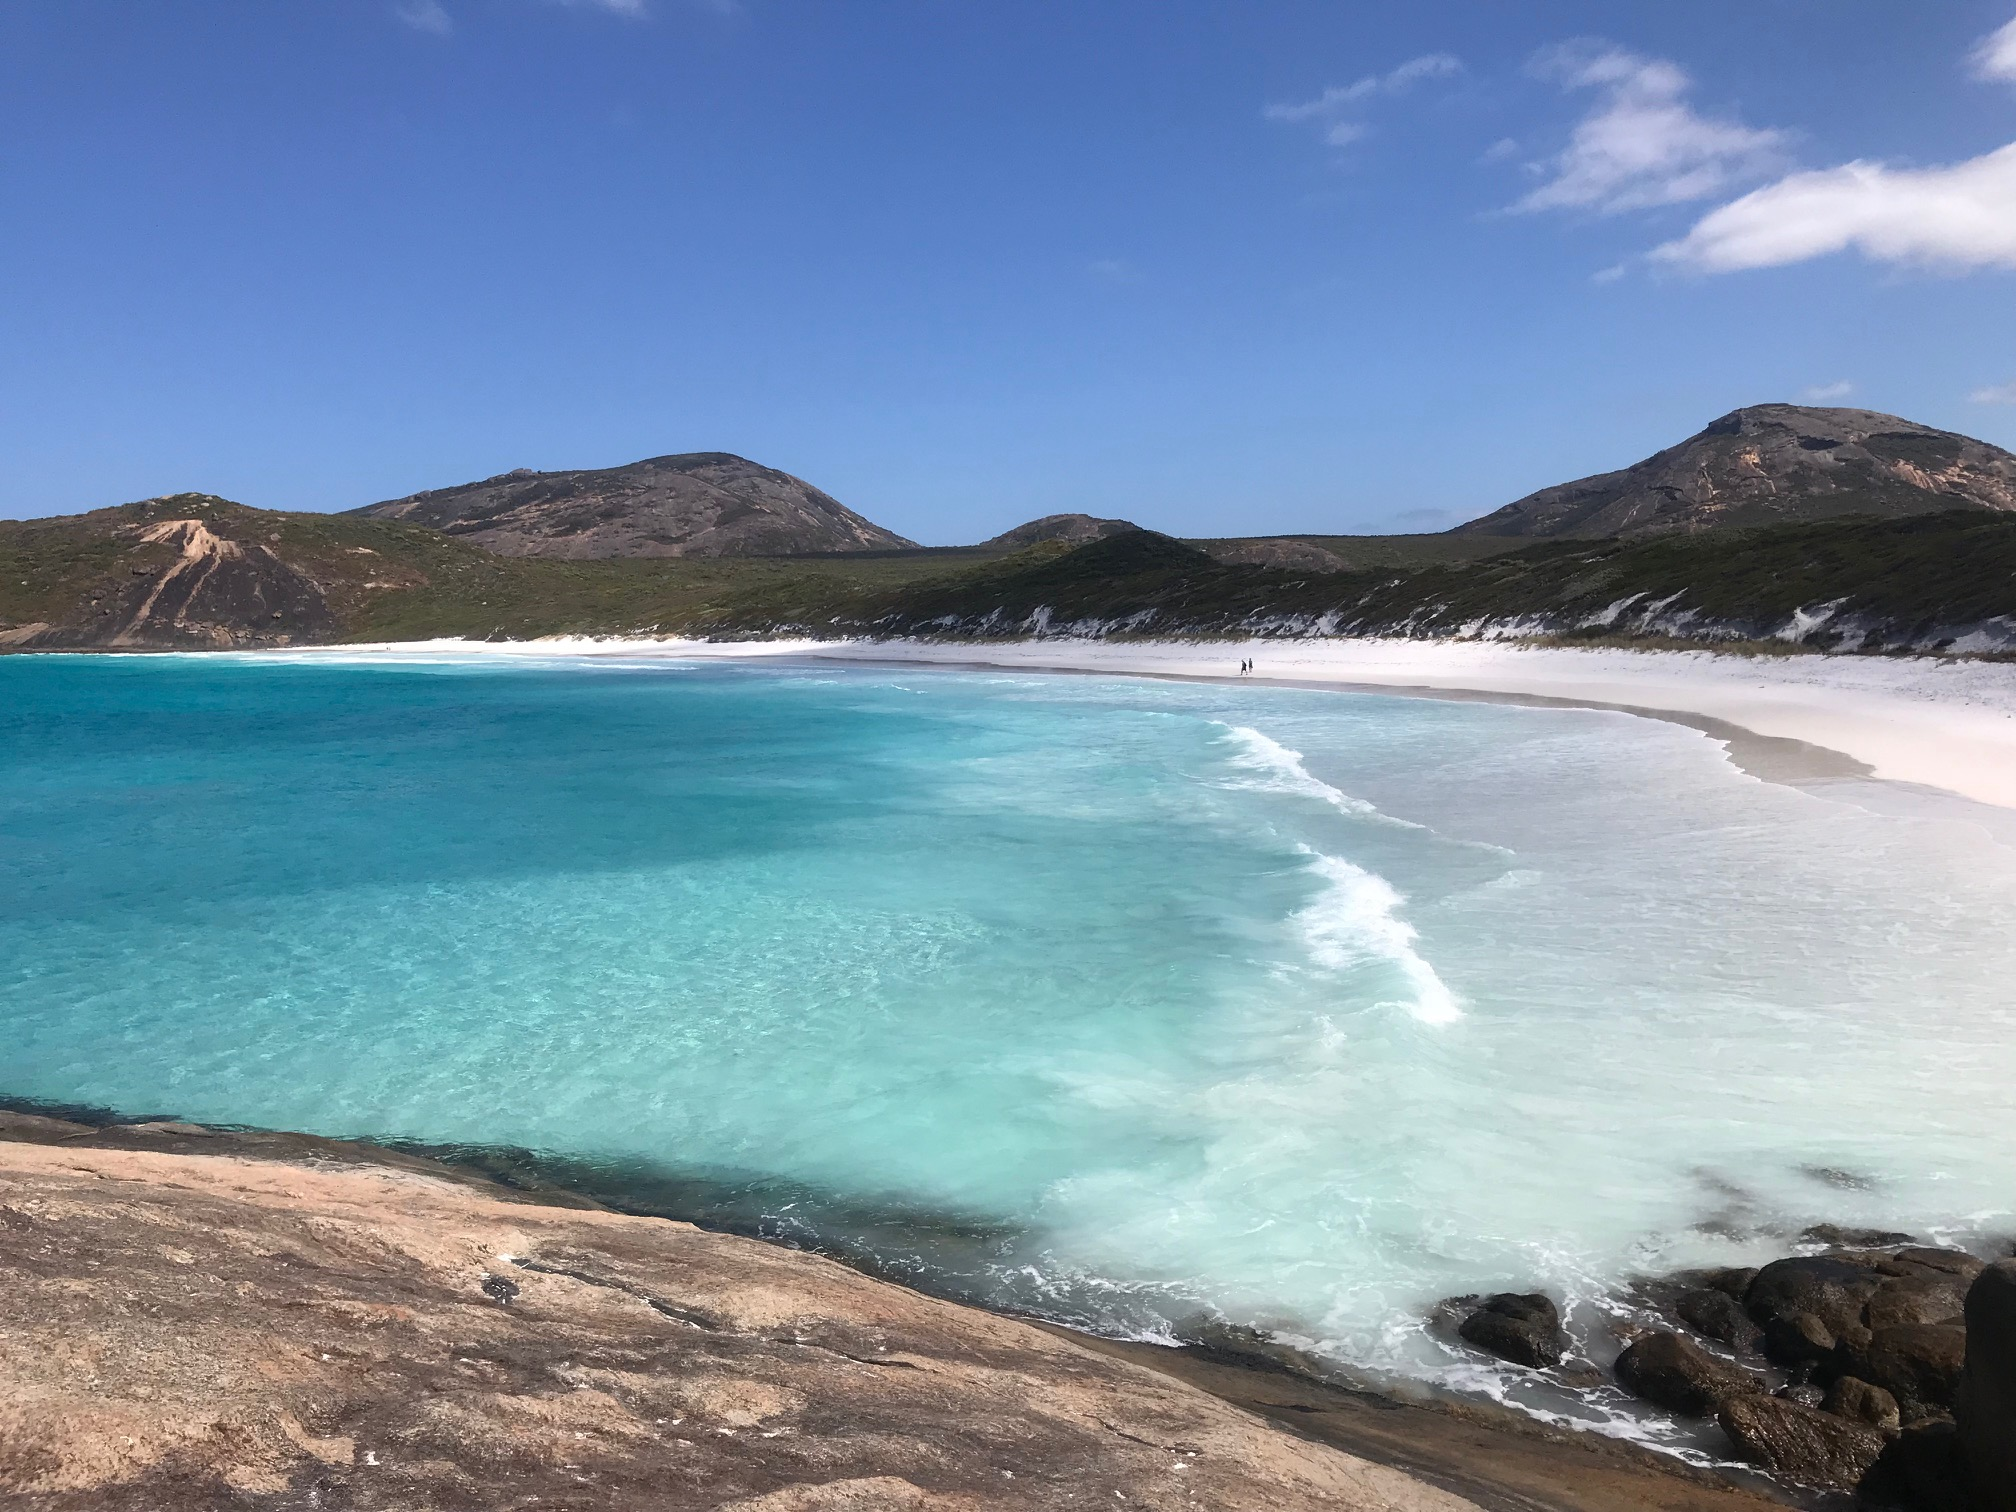 Top 5 things to do in Esperance, Australia